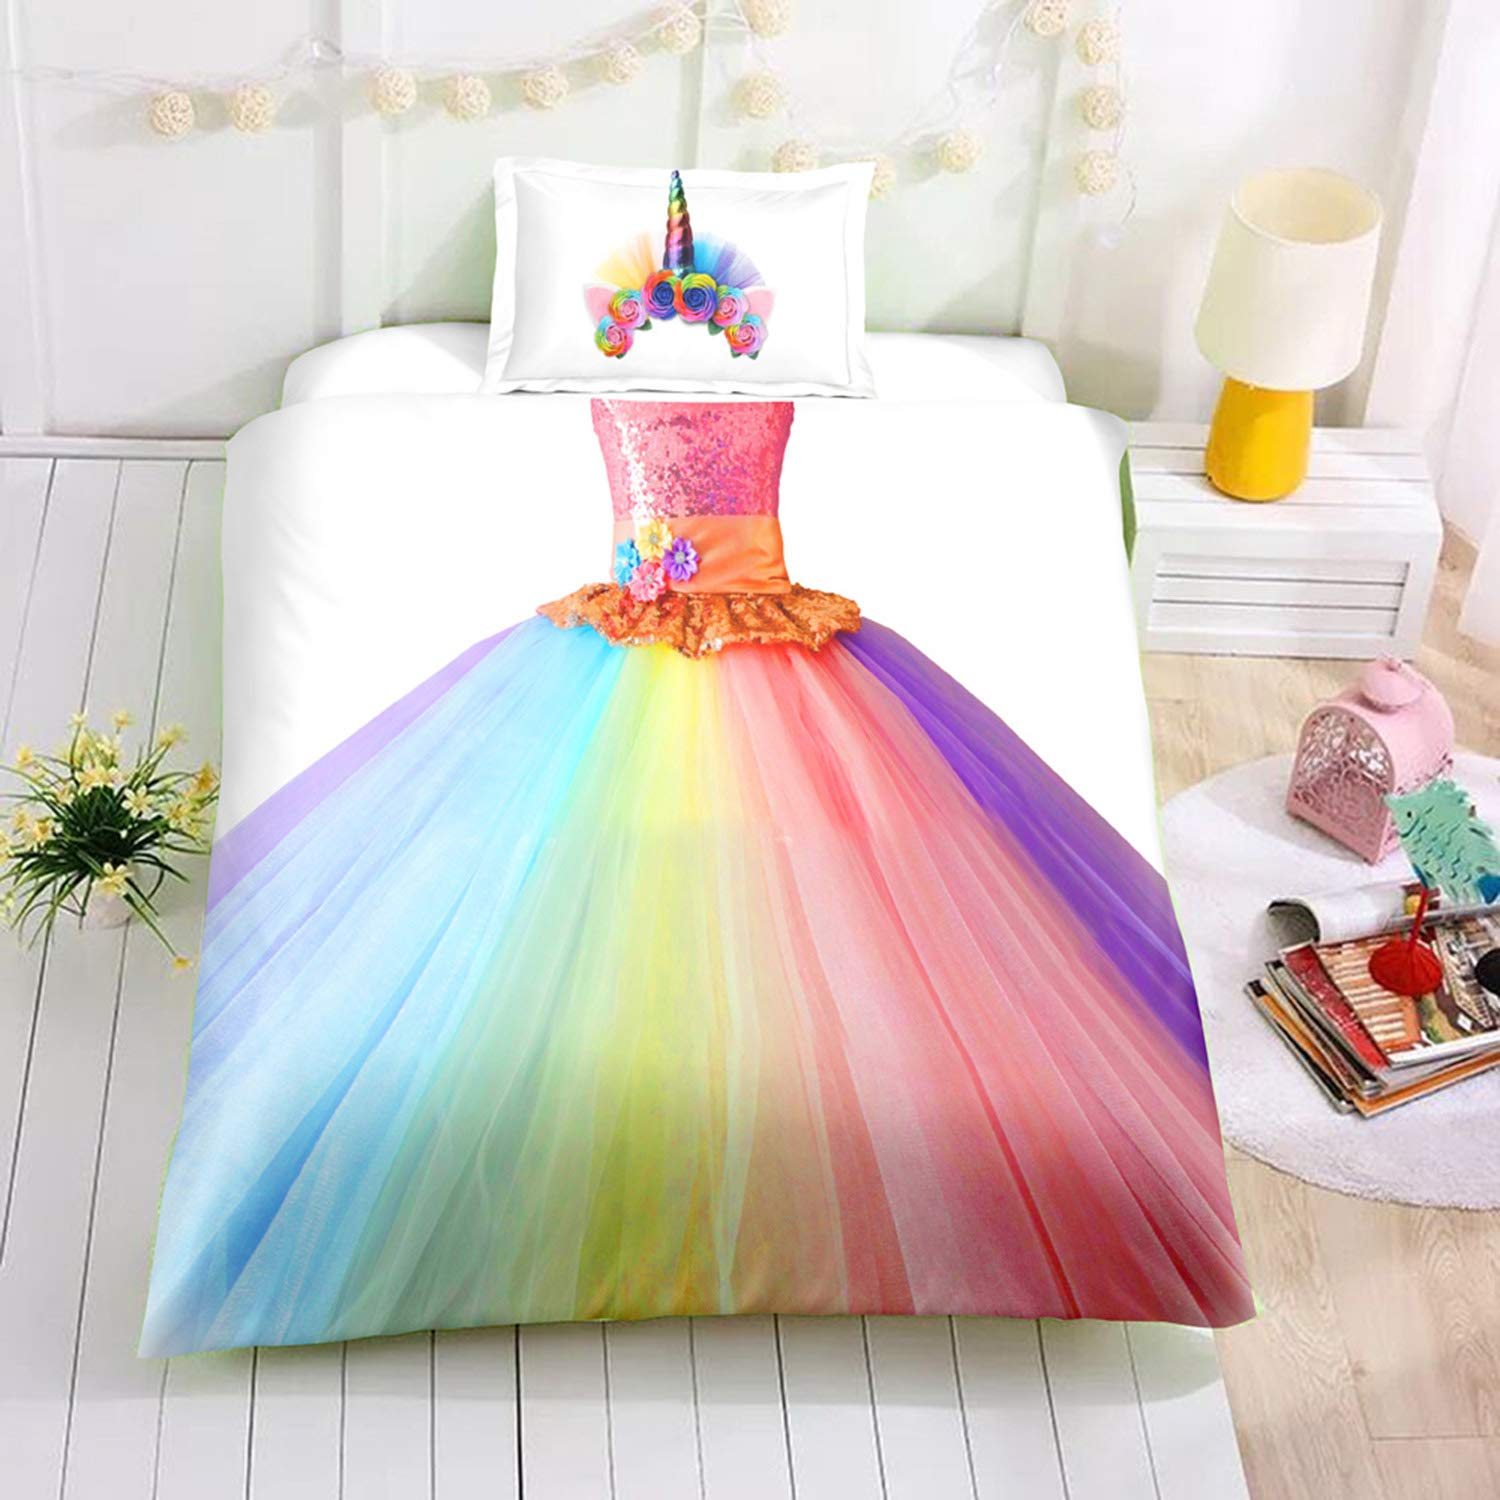 Felu Bedding Duvet Cover Set of Kids, Unique Design 3D Print Rainbow Dress Pattern Comforter Cover Set with 1 Duvet Cover and 1 Pillowcases (Twin Size)